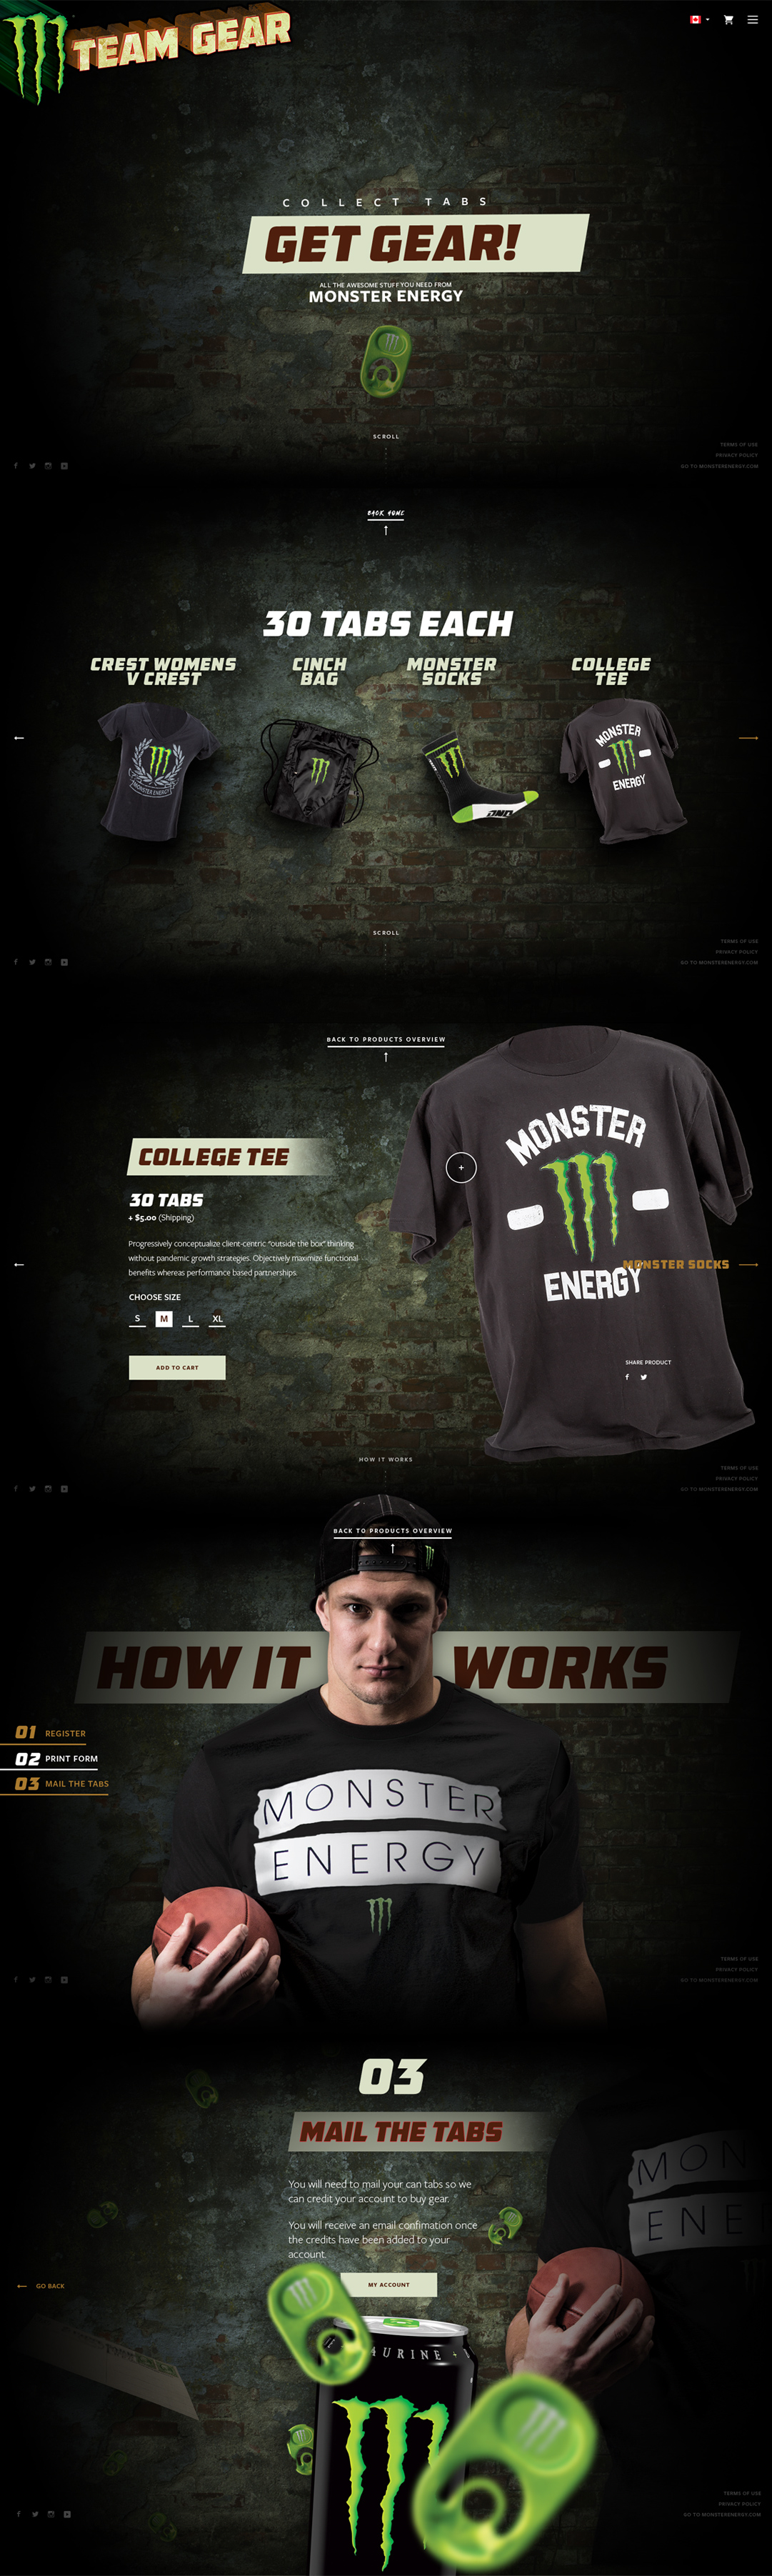 Monster Energy Gear Homepage, Ekko Media web design, video production and marketing